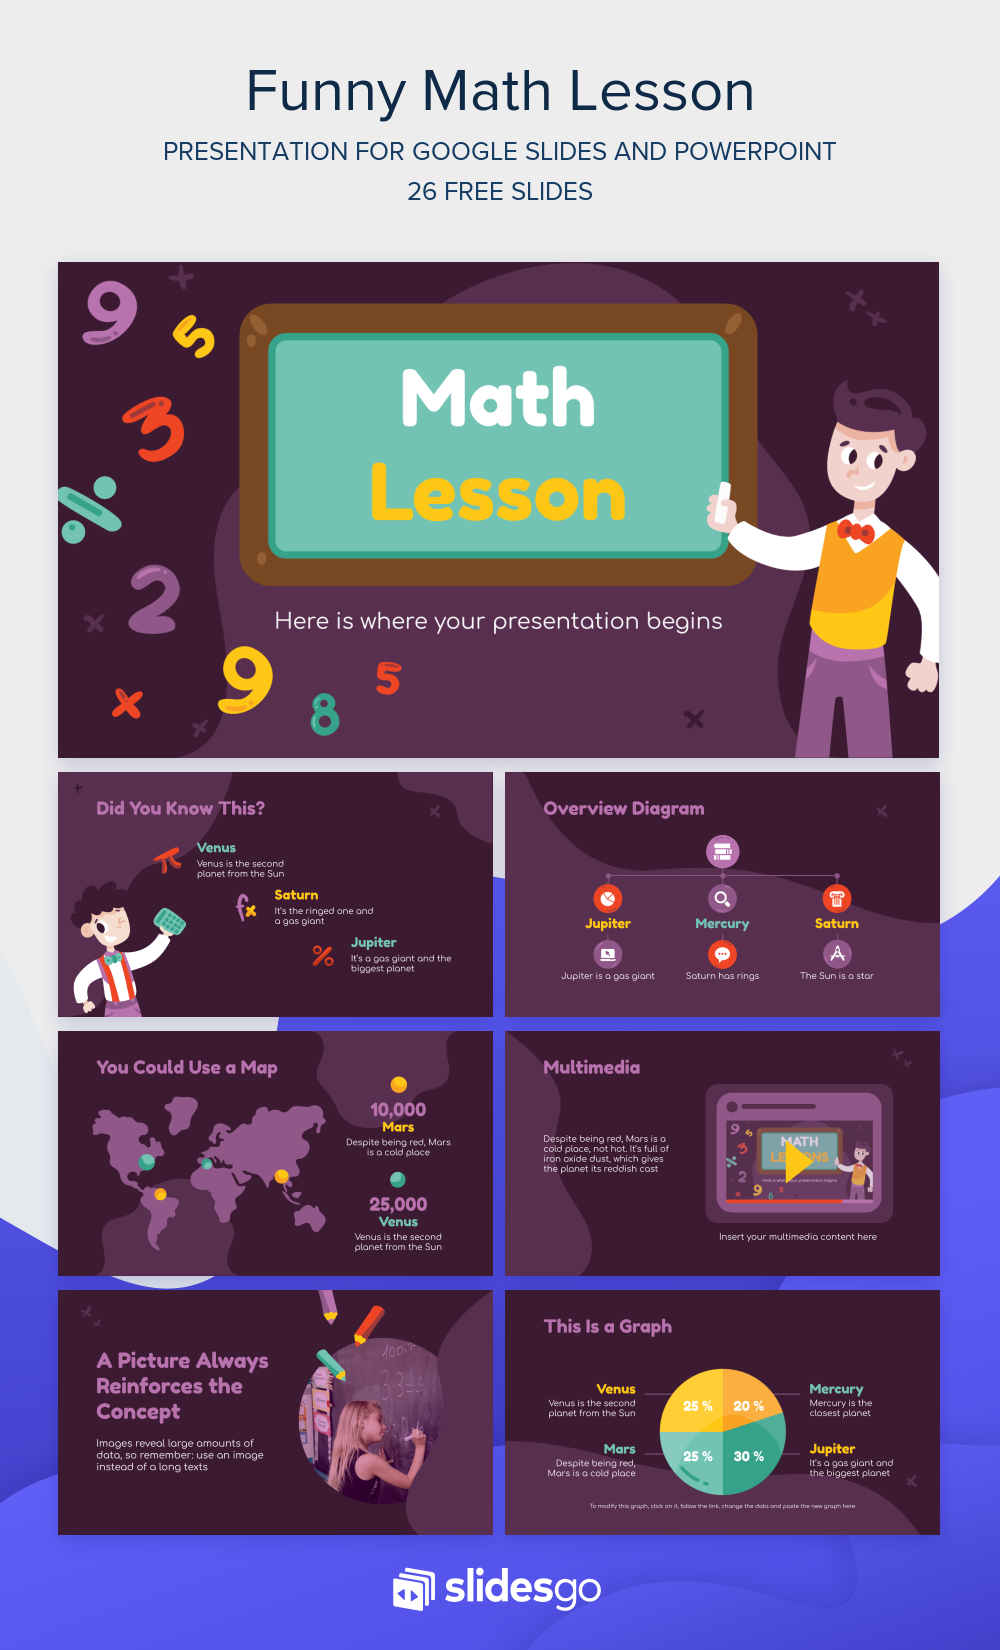 Prepare An Amazing Math Lesson For Your Students With This Funny Presentation Get It For Free Available As Google Slides Th Math Lessons Math Powerpoint Math